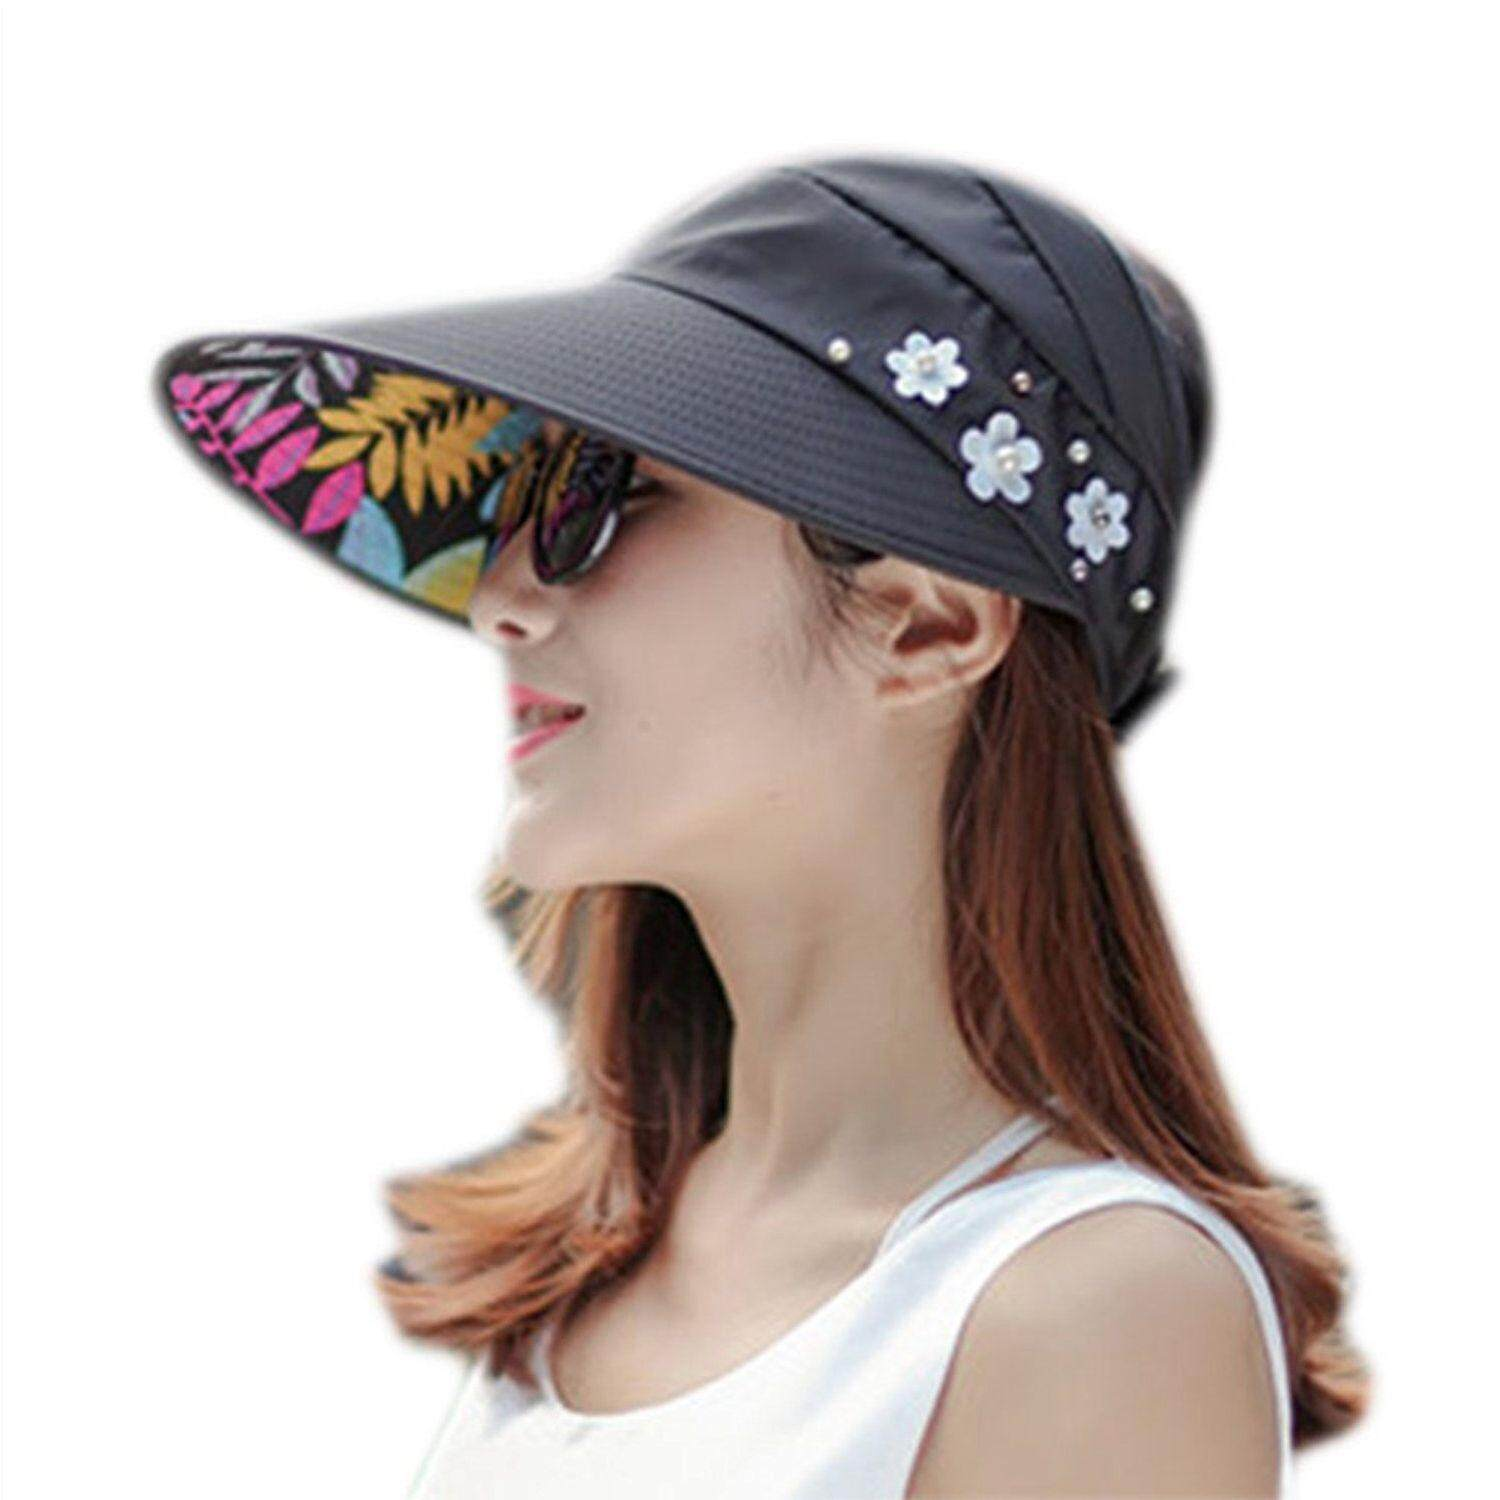 Sun Cap Ladies Foldable Beach Hat Wide Brim Plain Visor Hat Summer UV Sun  Protection Travel 3ef125ea7aea